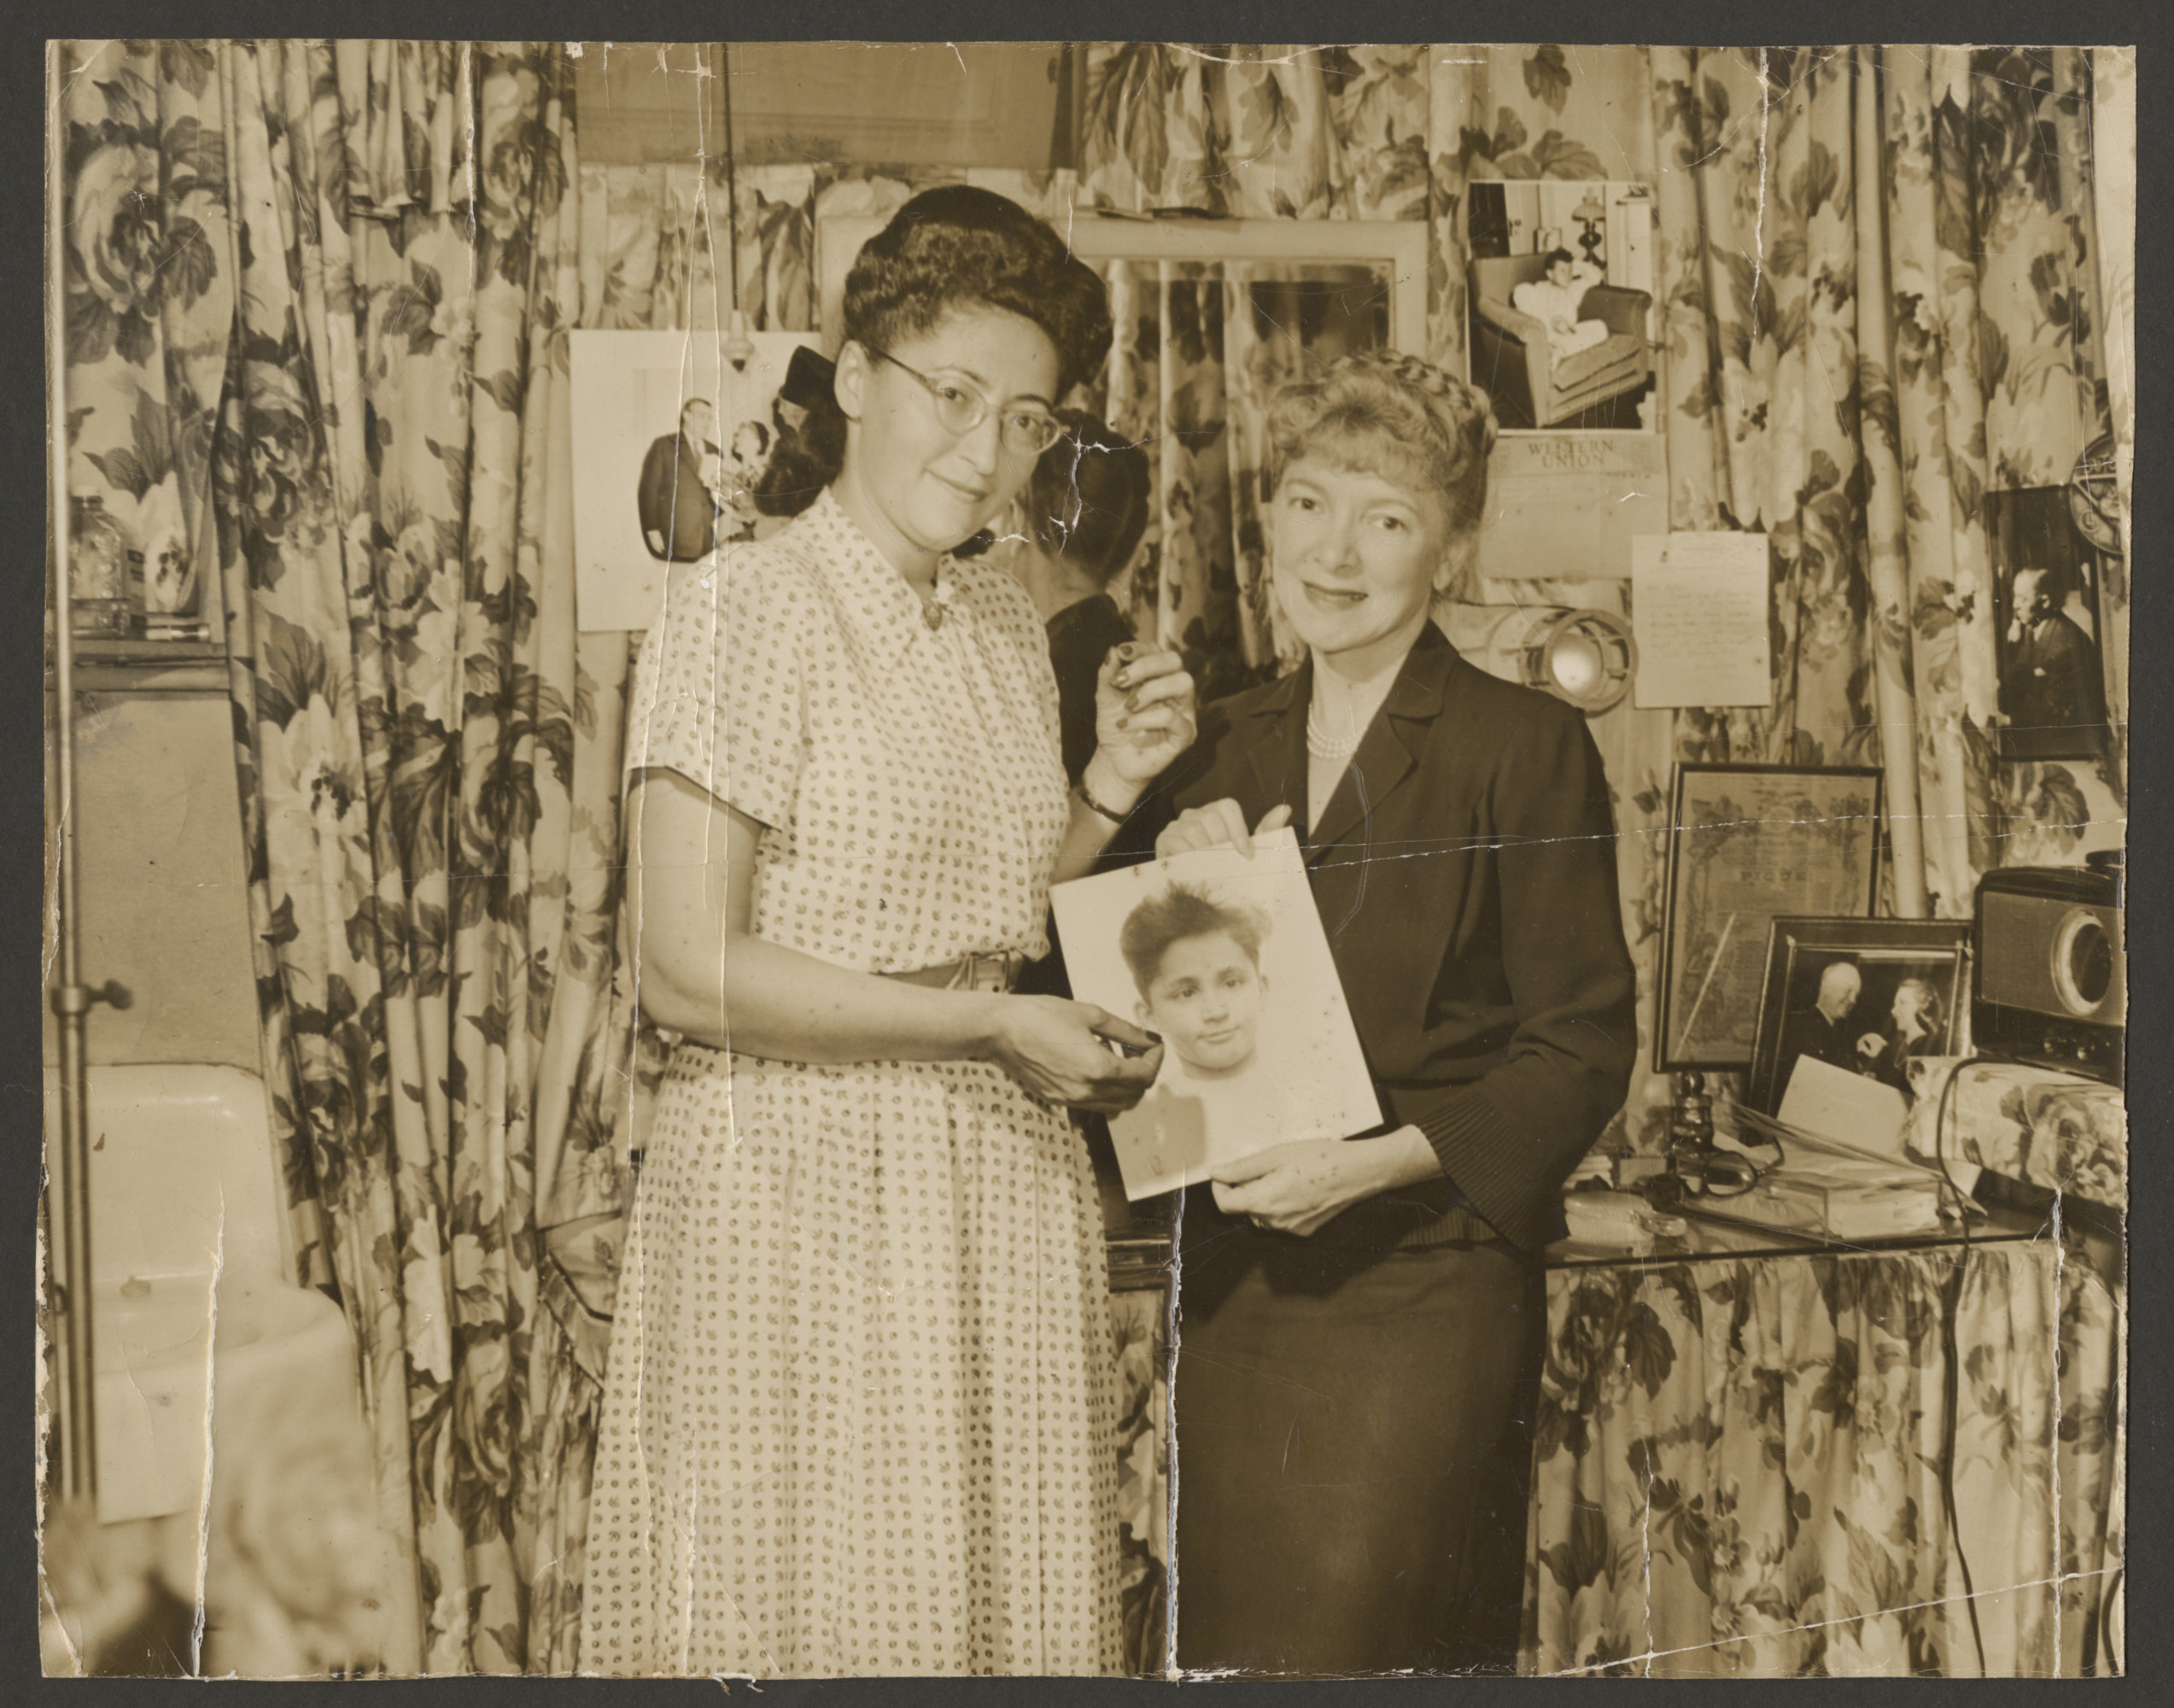 Ann Goldman poses with actress  Helen Hayes holding the photograph of a young European Jewish boy.  Helen Hayes agreed to adopt him through the organization, Save the Children.